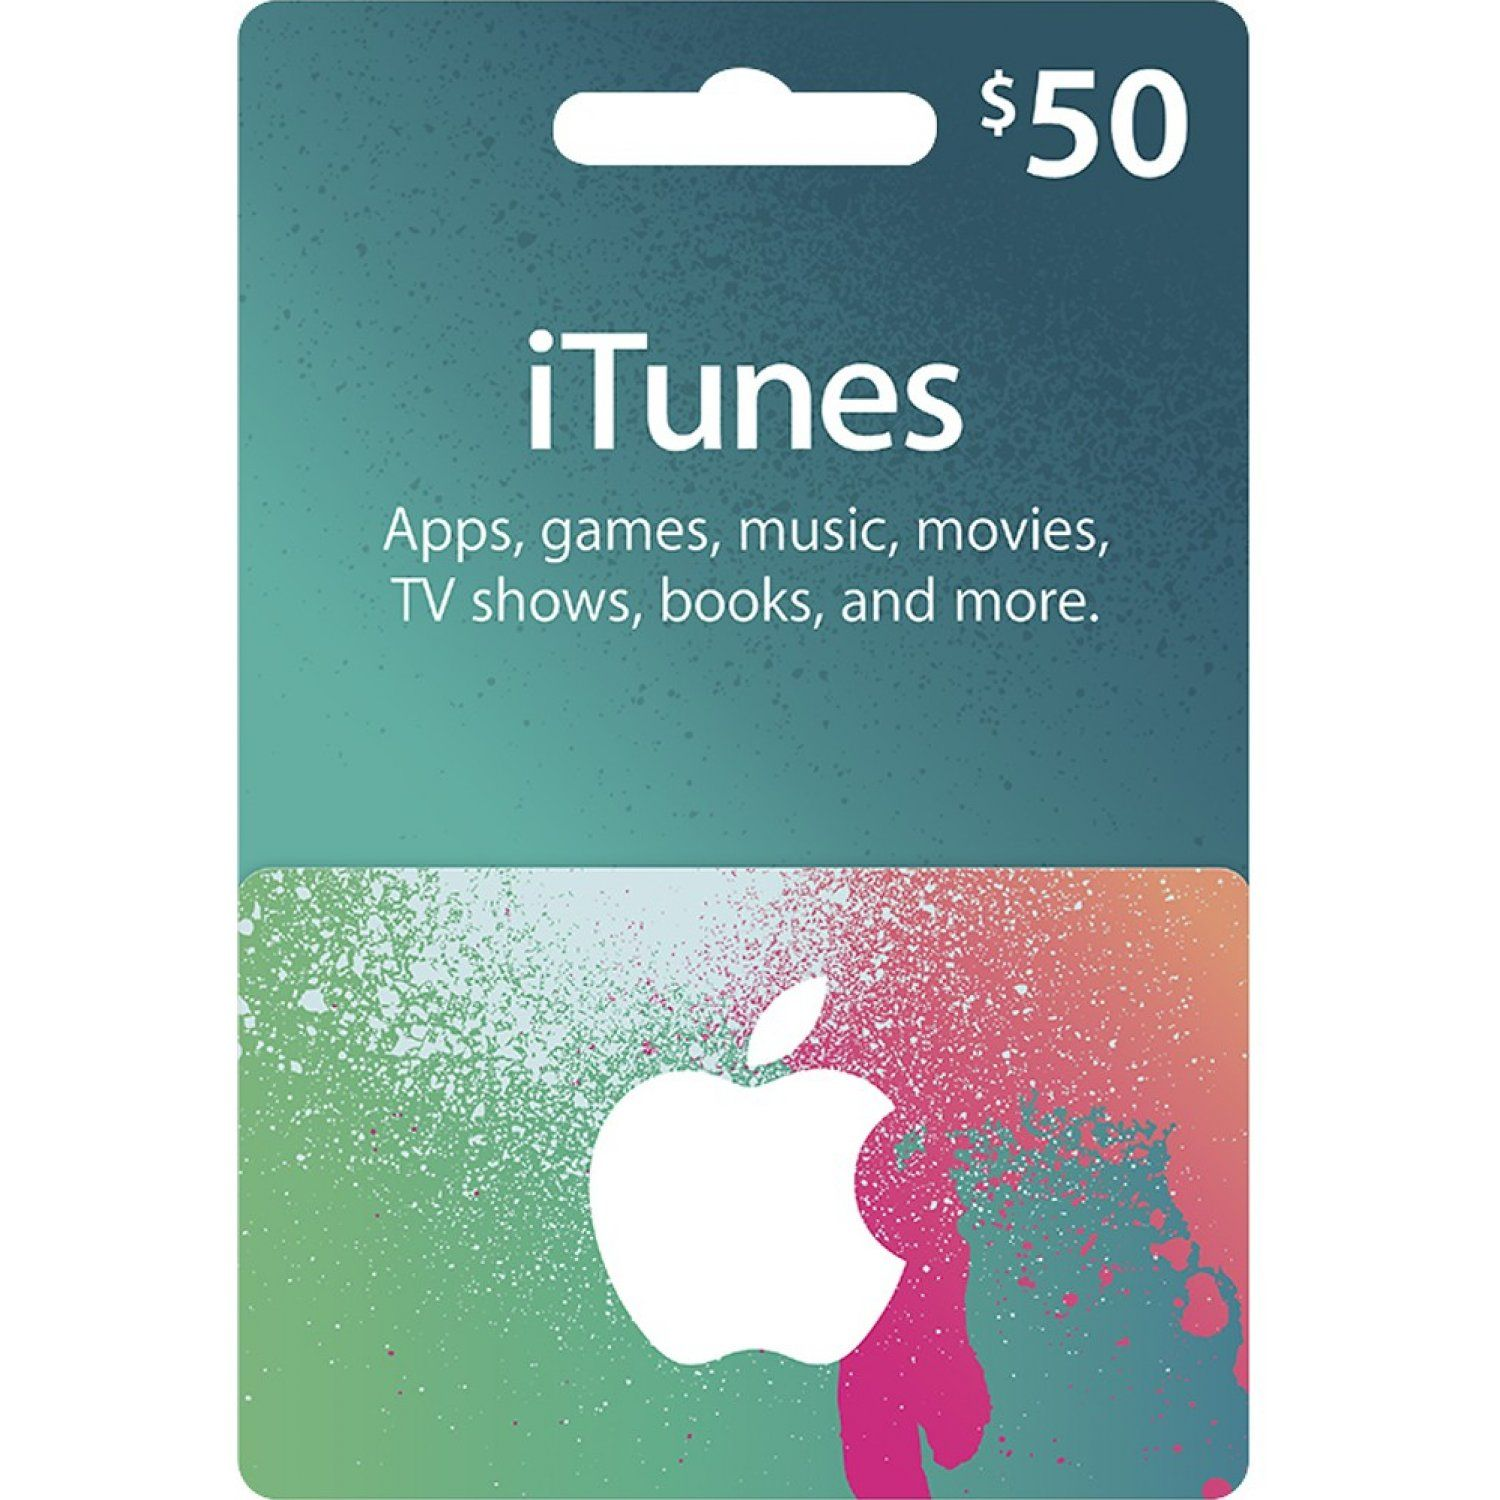 Itunes Card Usd 50 For Us Accounts Only Digital In 2020